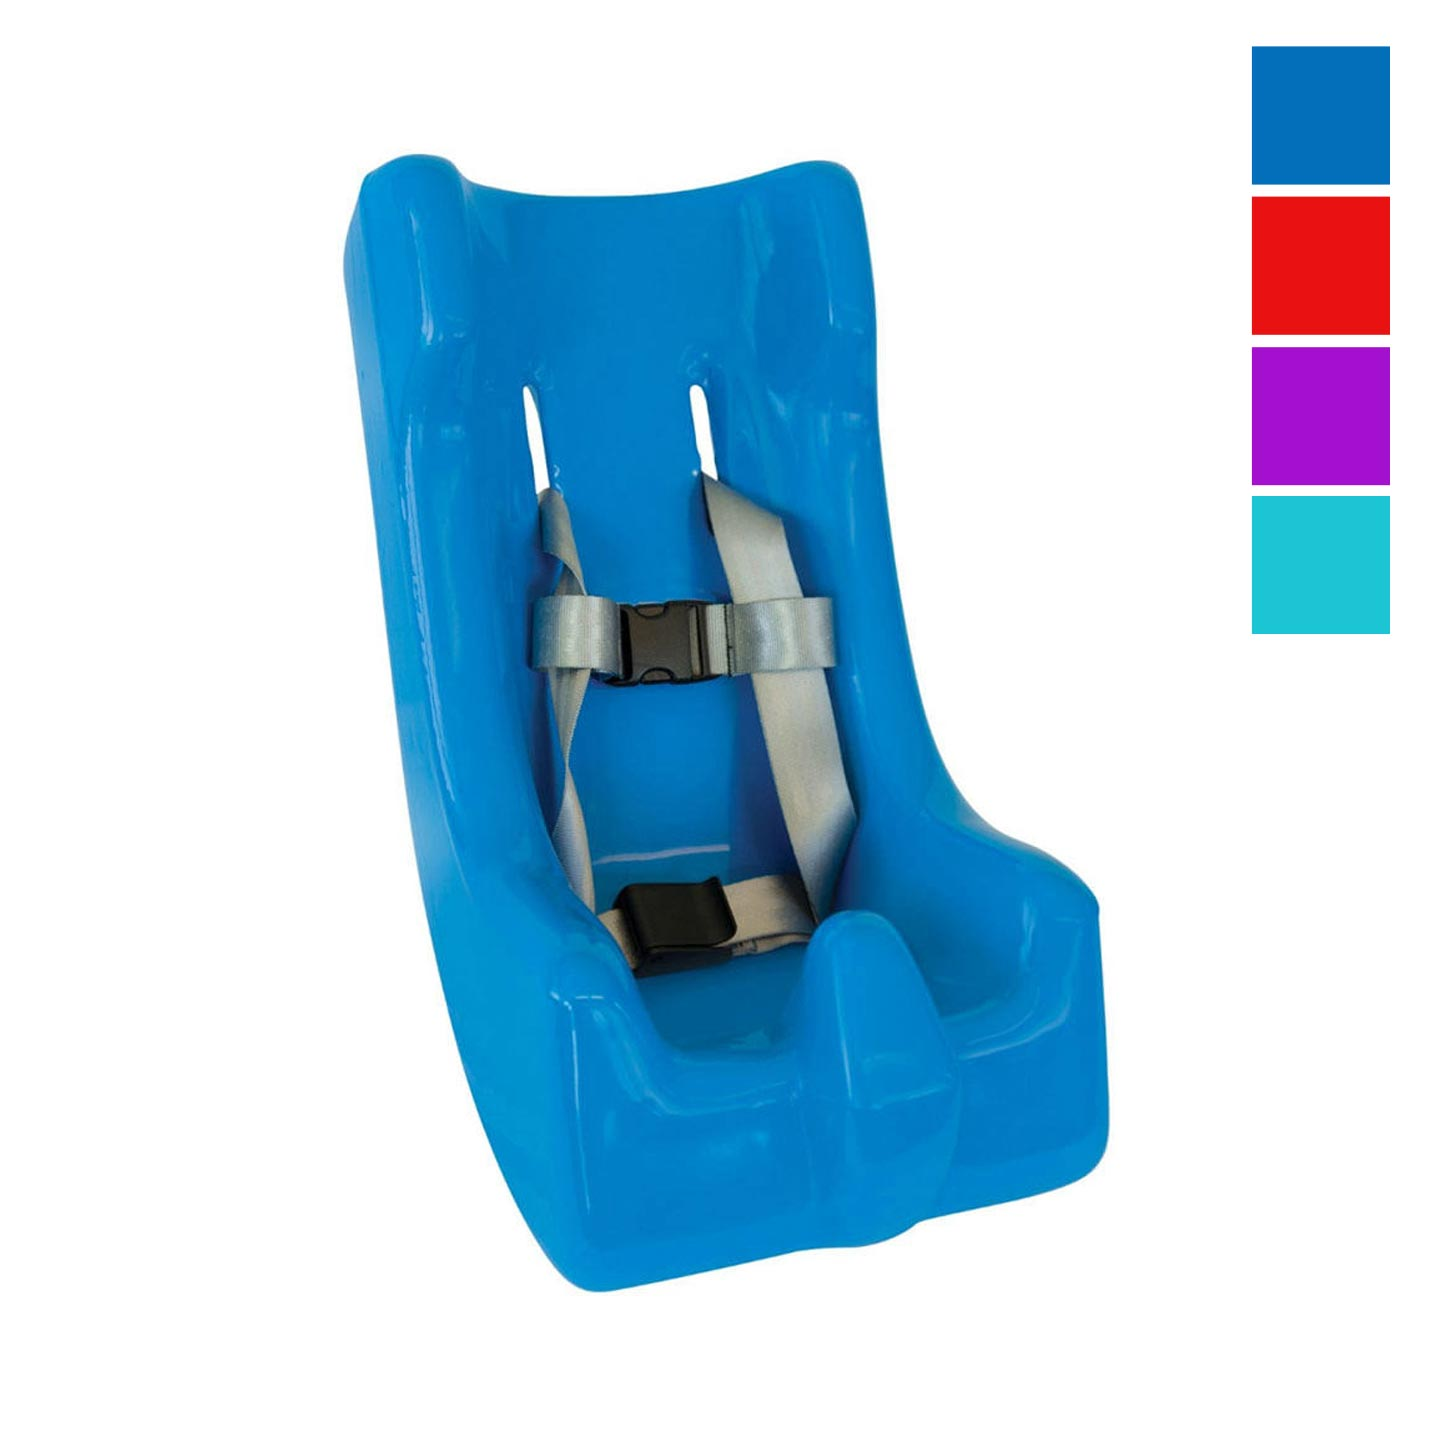 Tumble Forms 2 Feeder Seat Positioner | Performance Health